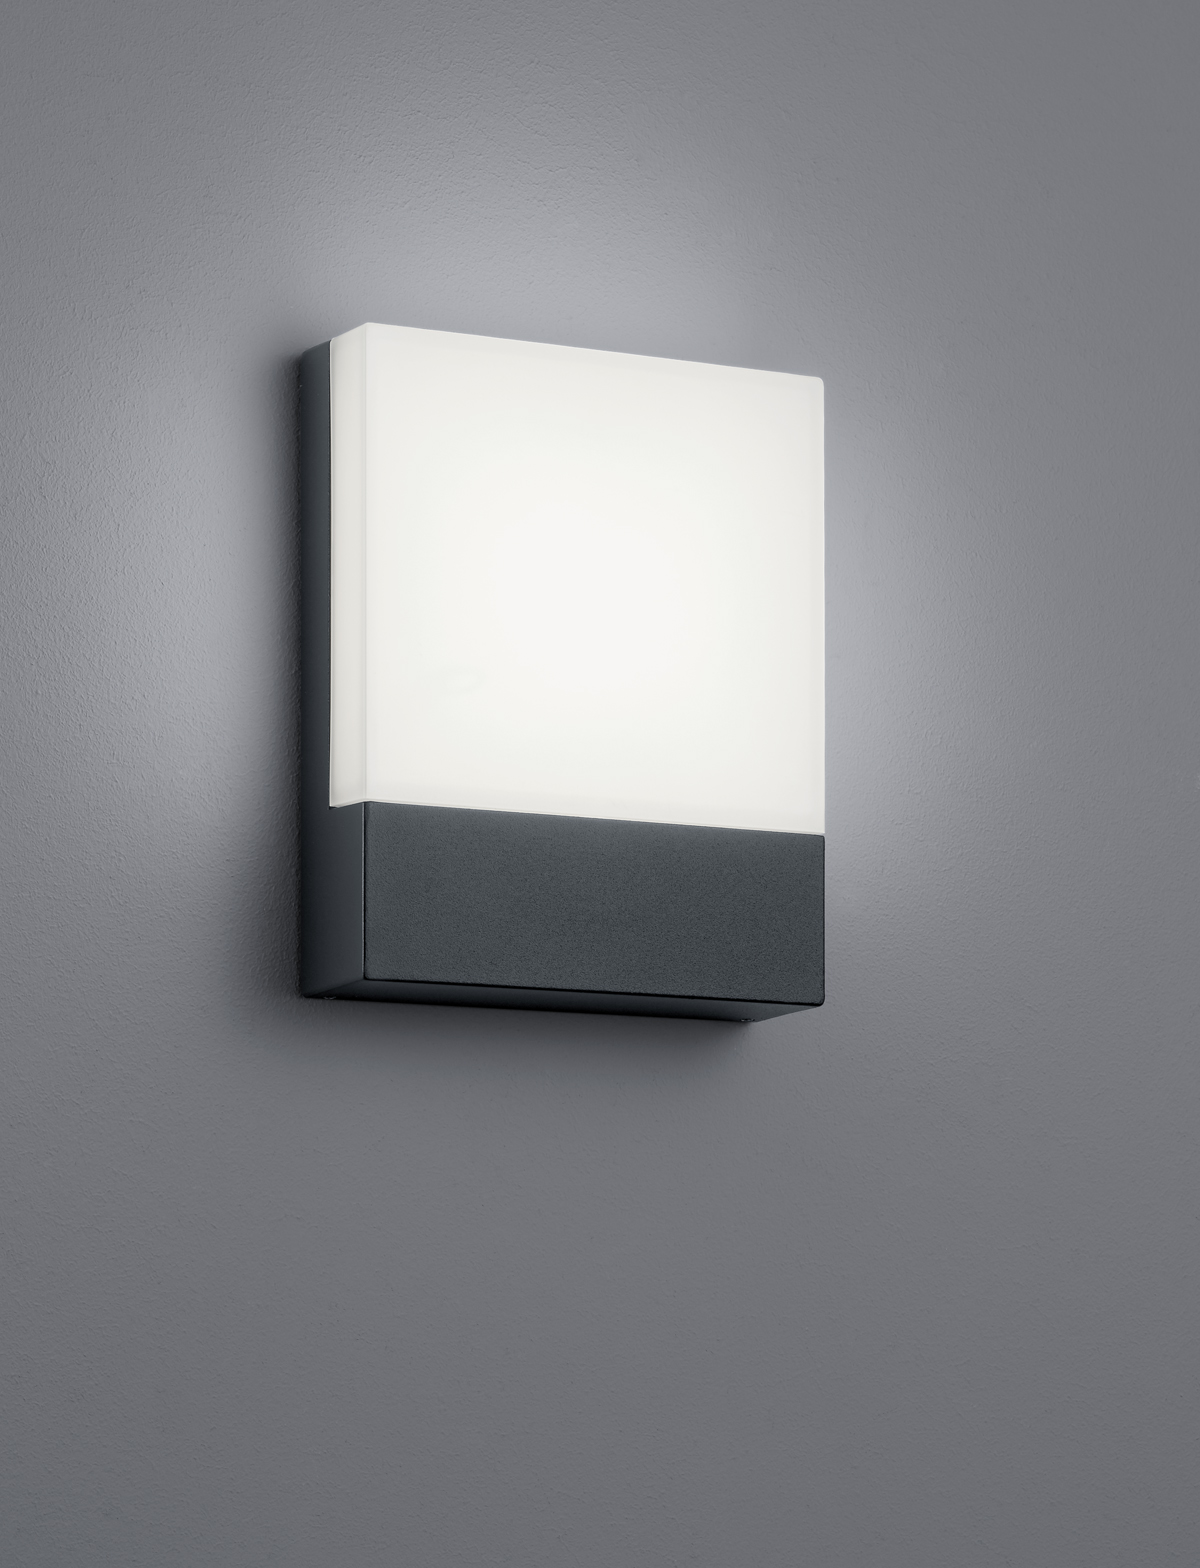 LED-seinävalaisin Trio Pecos 200x160 mm antrasiitti